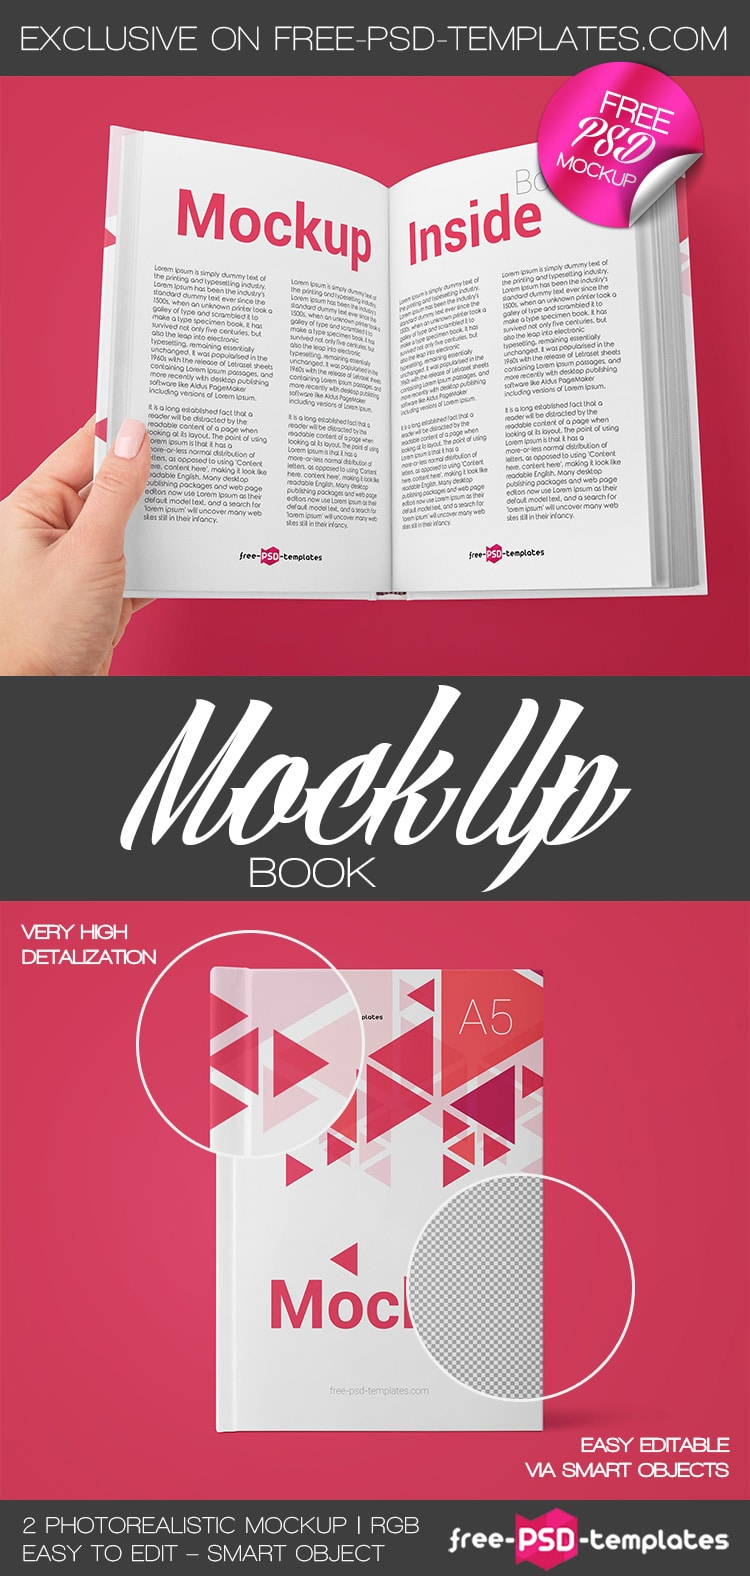 2 free PSD mockups for book